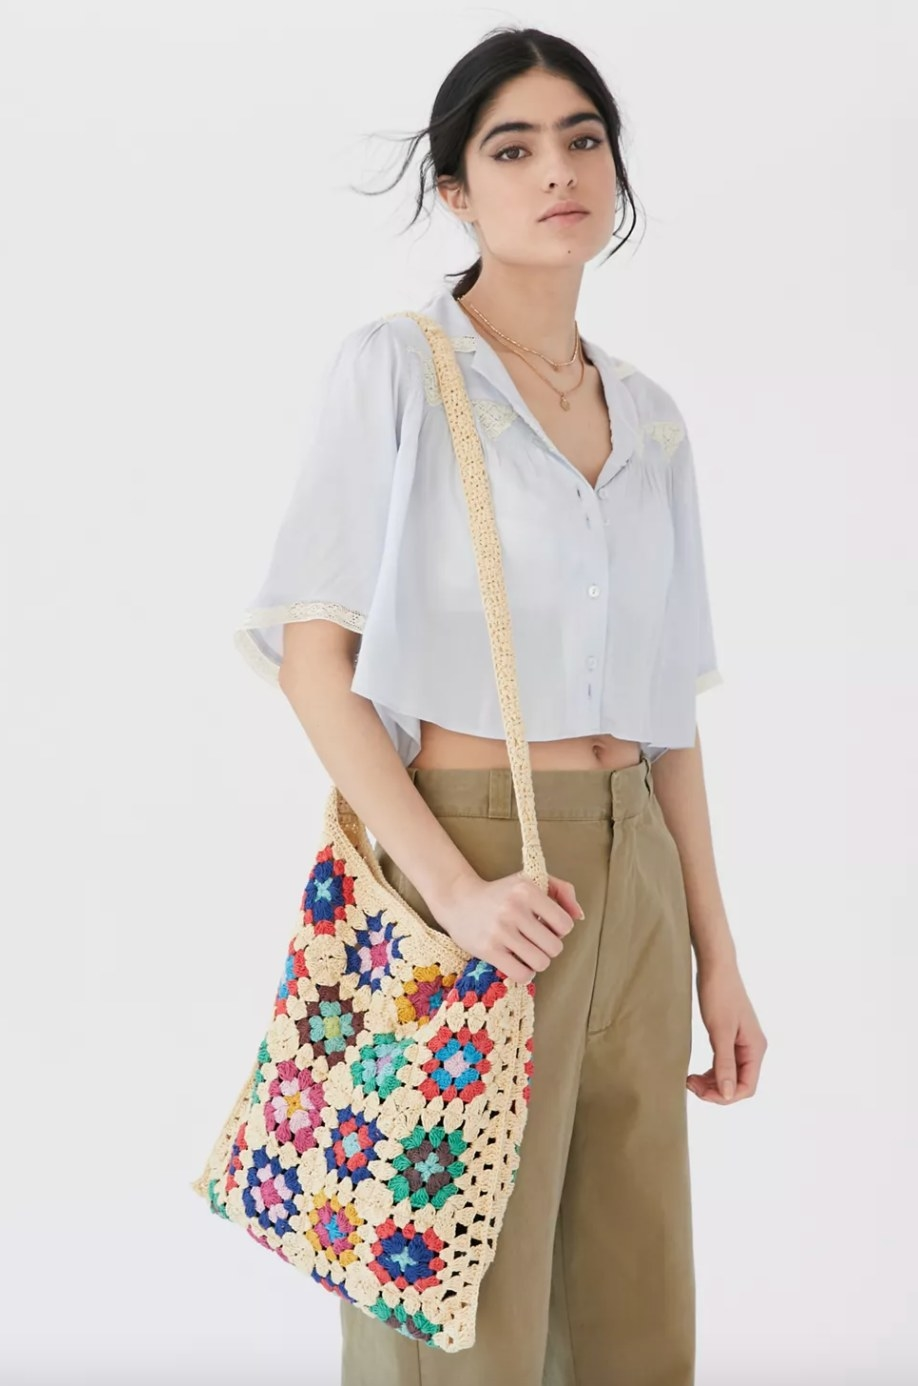 the crochet shoulder bag in nude and colorful